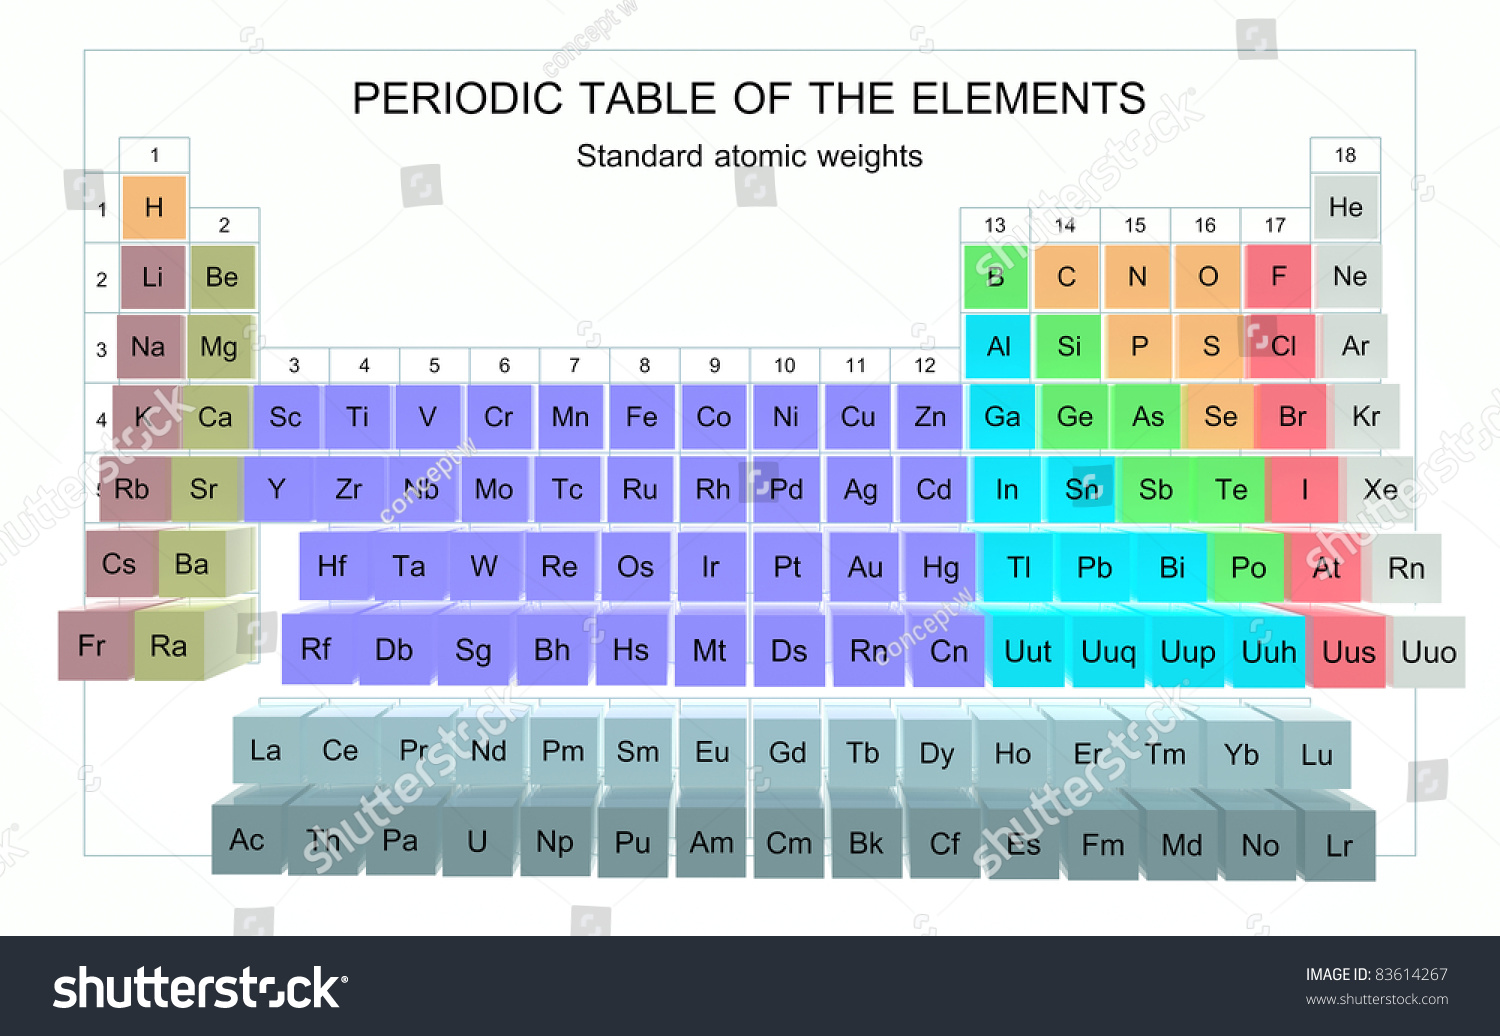 Periodic table elements standard atomic weights stock illustration periodic table of the elements standard atomic weights gamestrikefo Images